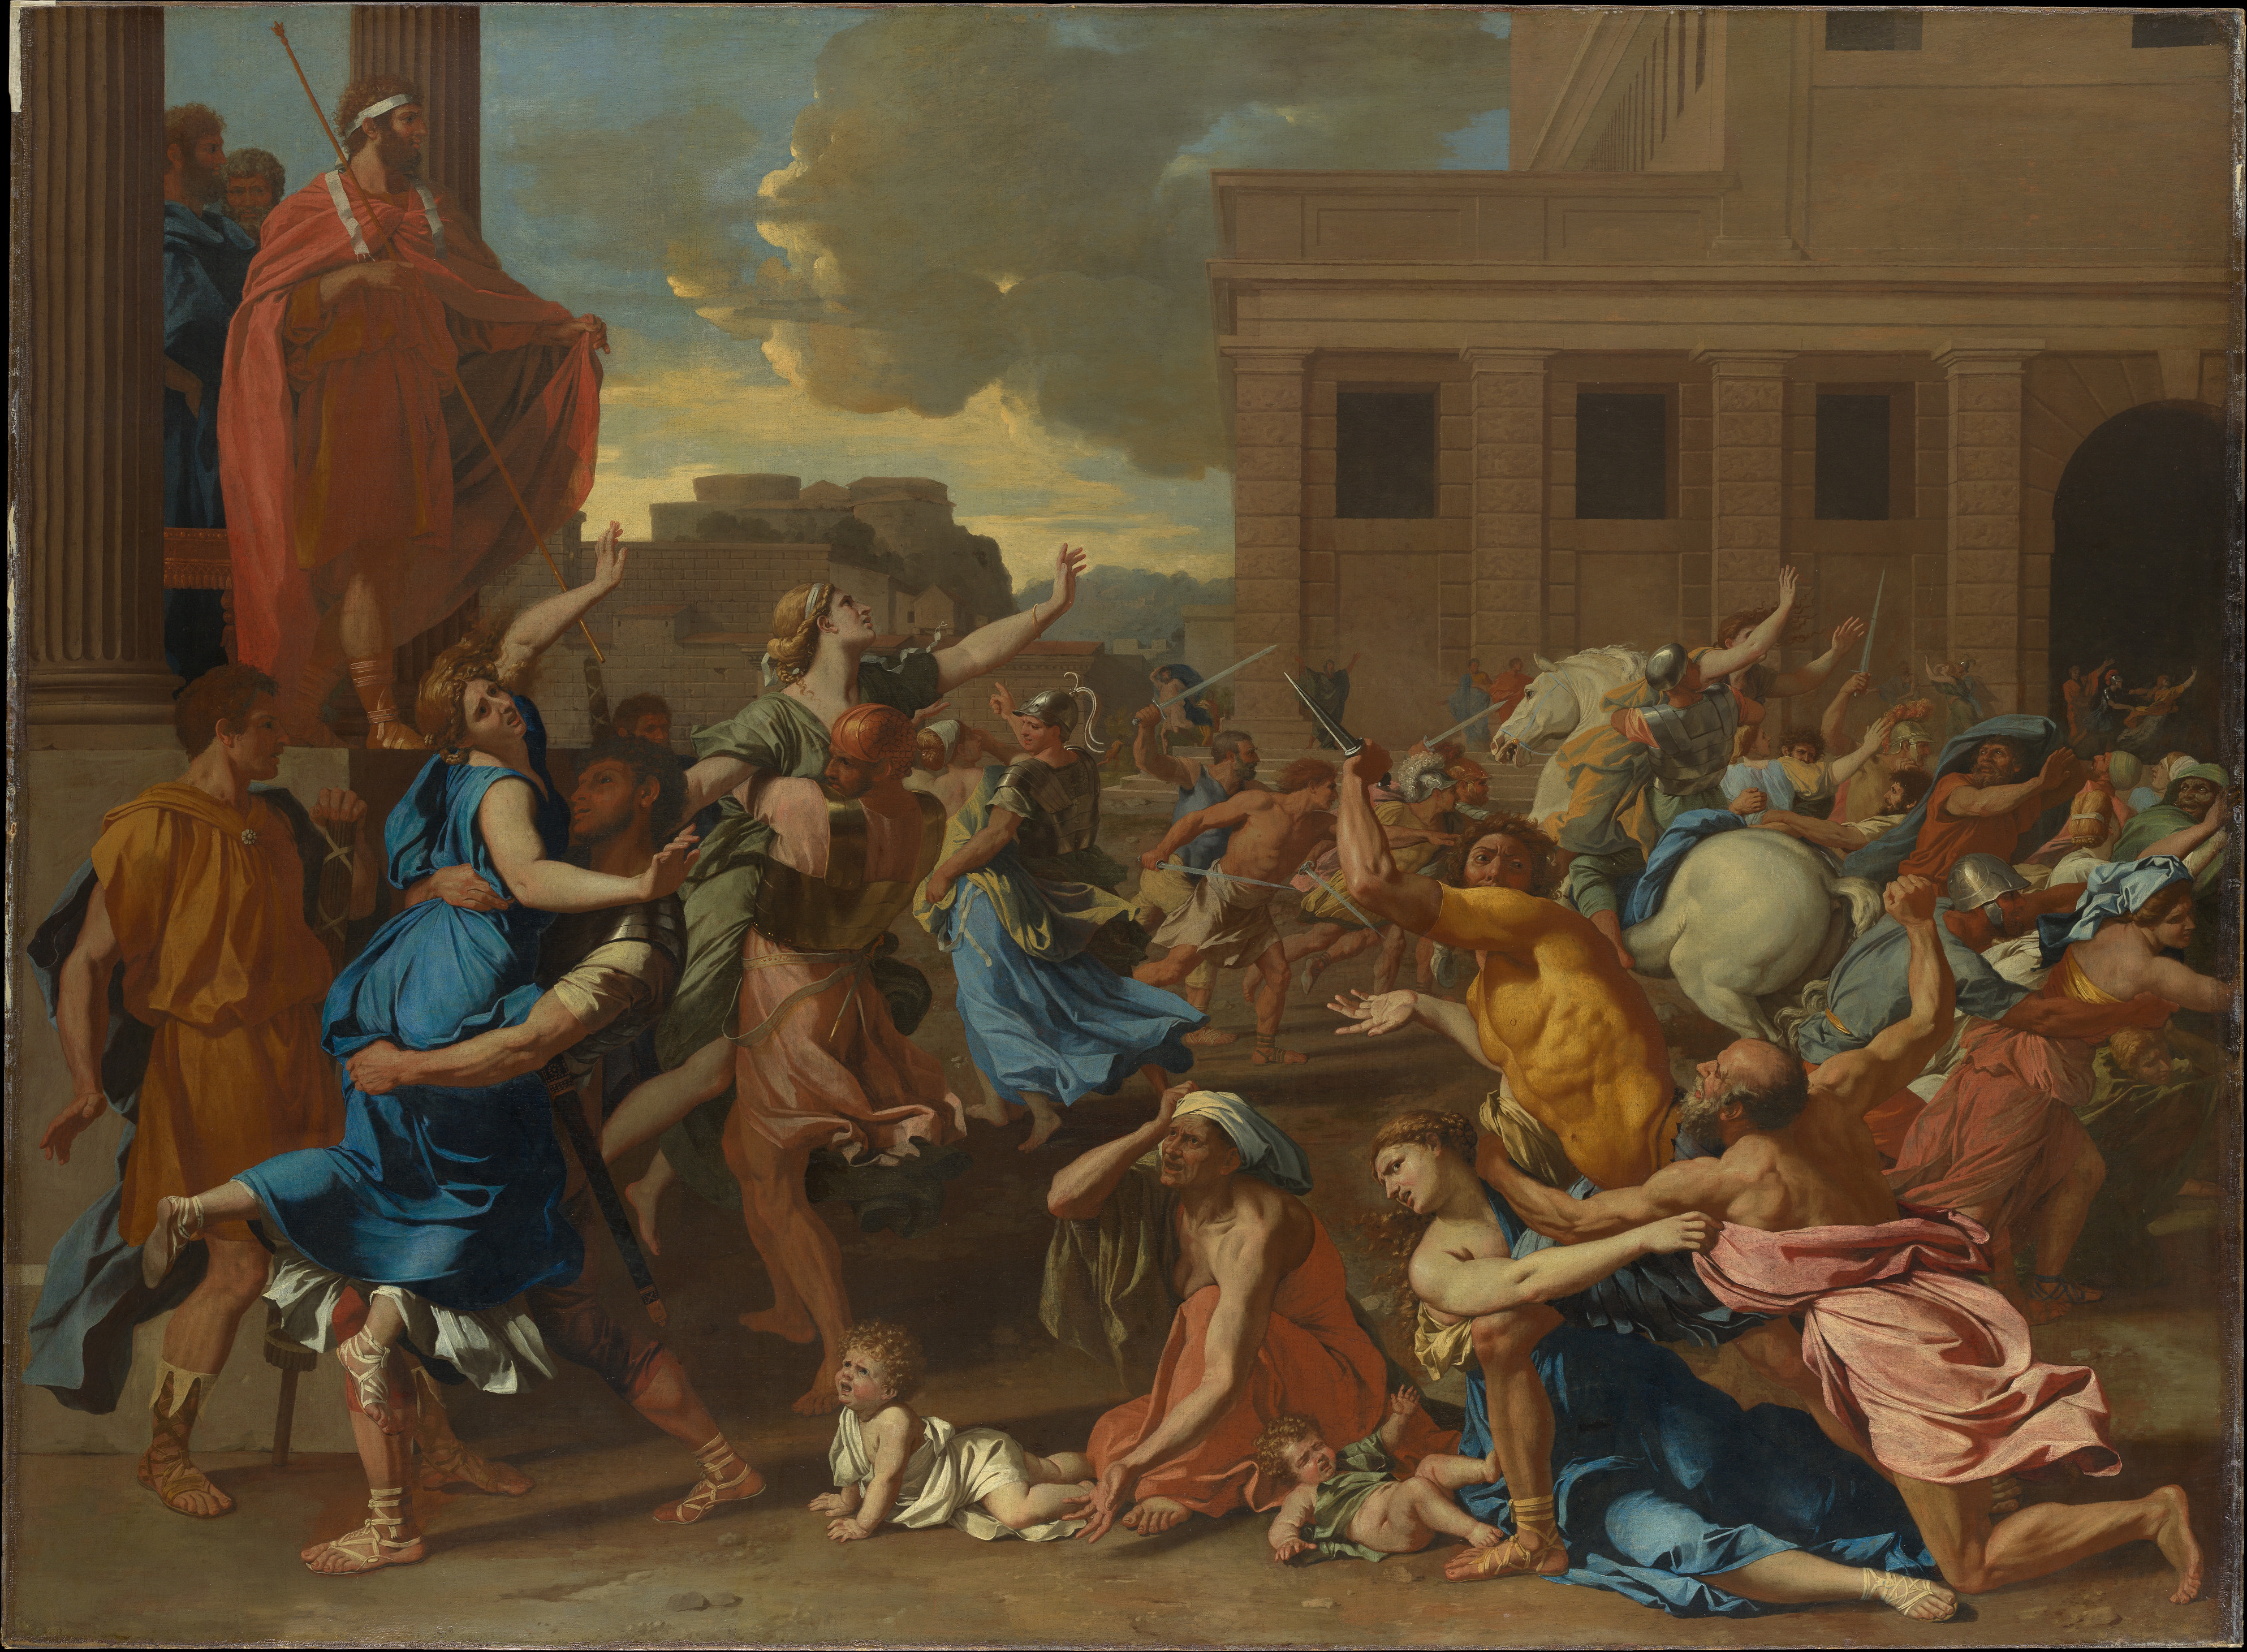 A study on nicolas poussin and the roman influences in france